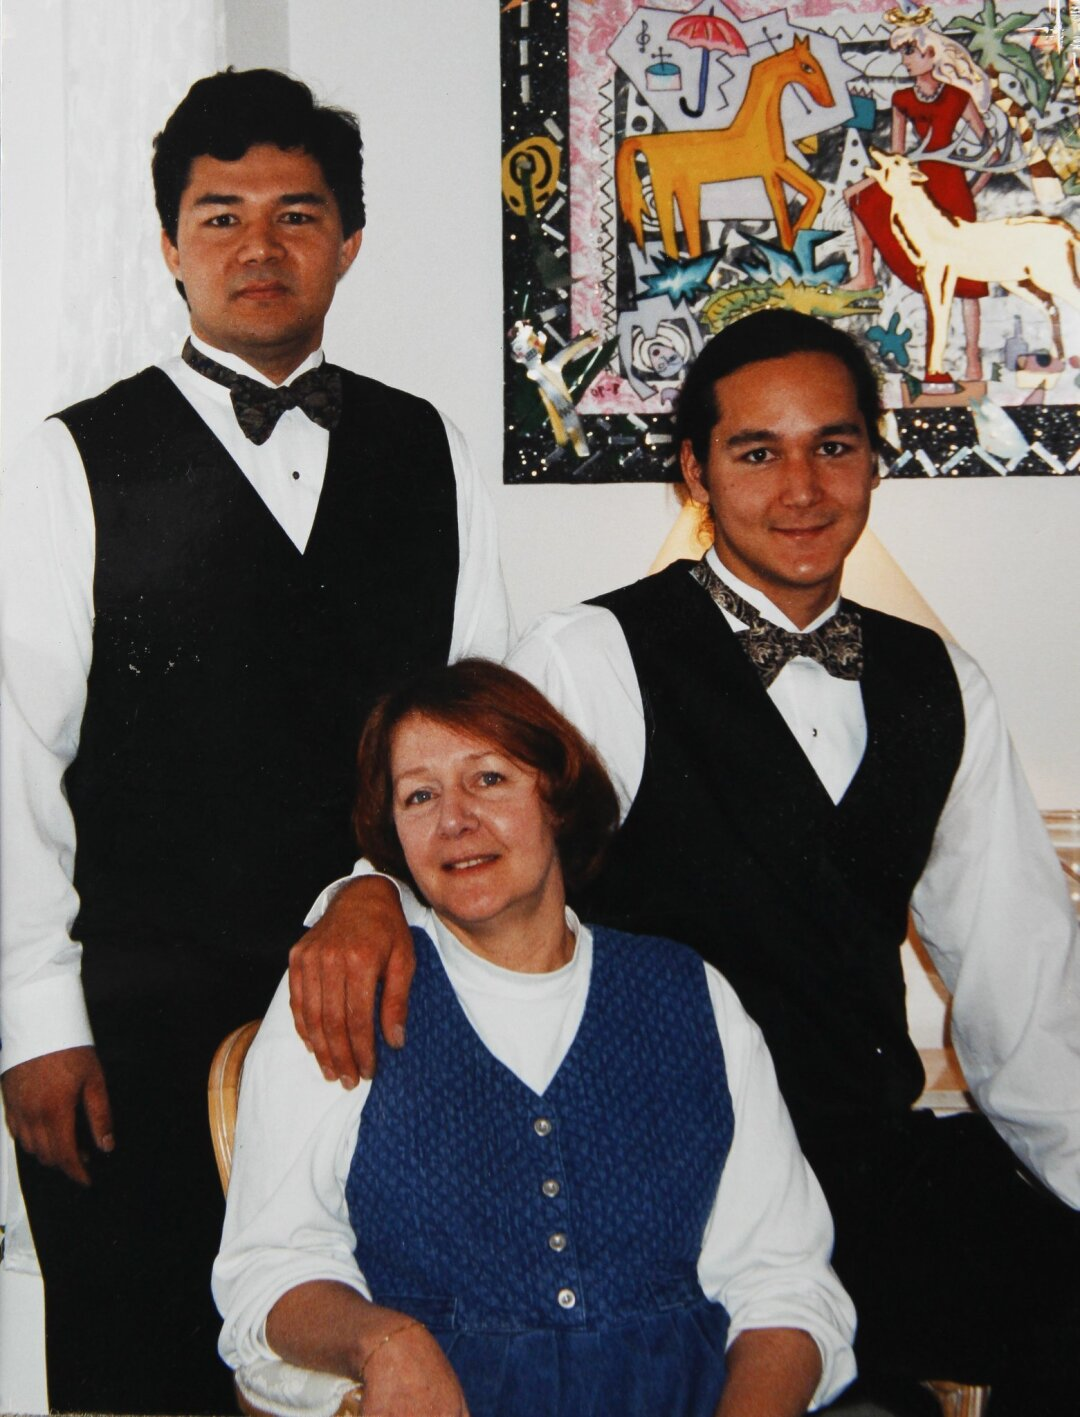 A picture, taken during a cousin's wedding, of Rochelle Nishimoto and her sons Jason Nishimoto, left, and Adrian Nishimoto.